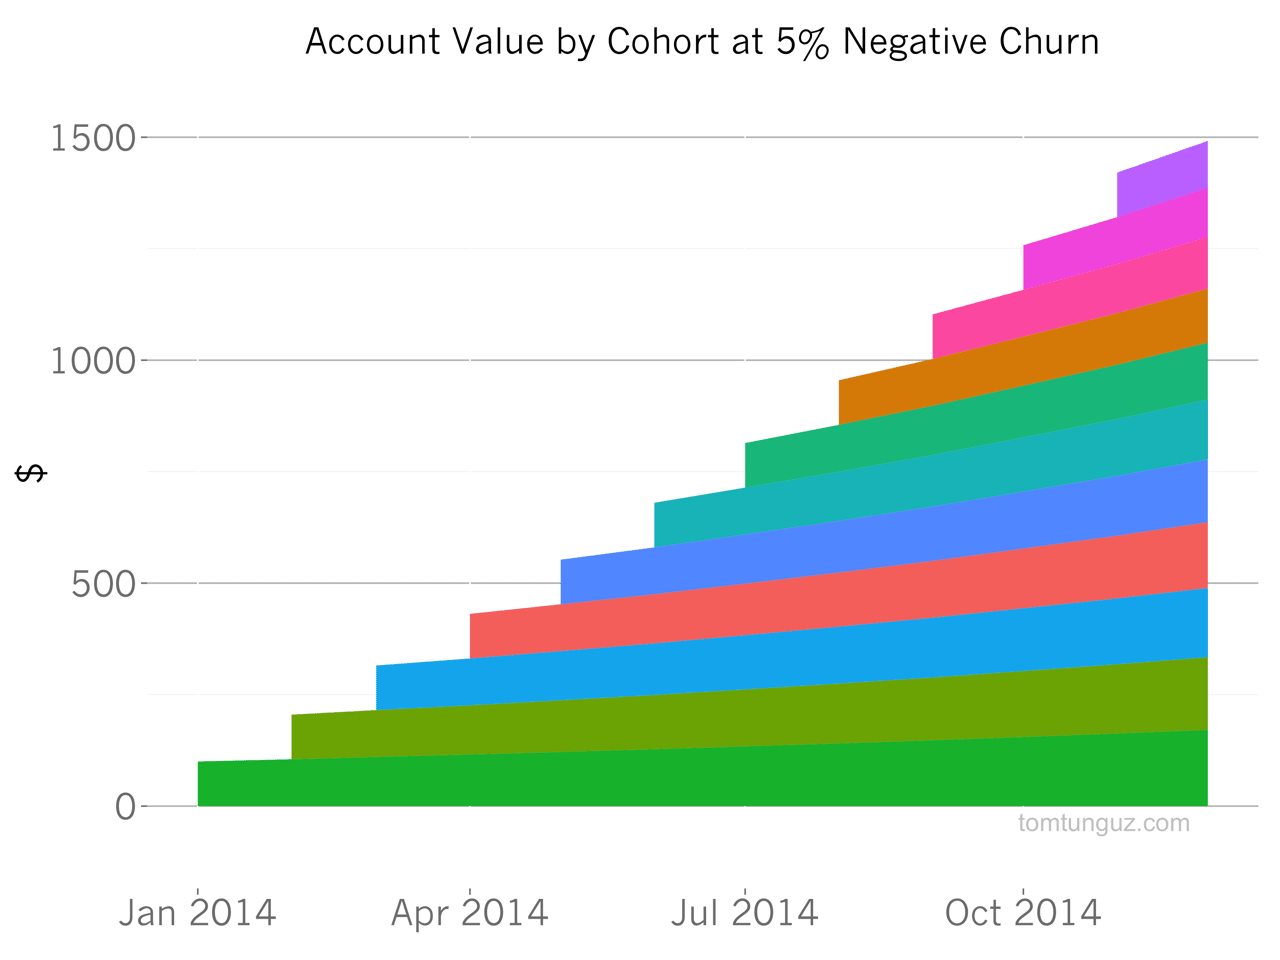 account value by cohort at 5 percent negative churn